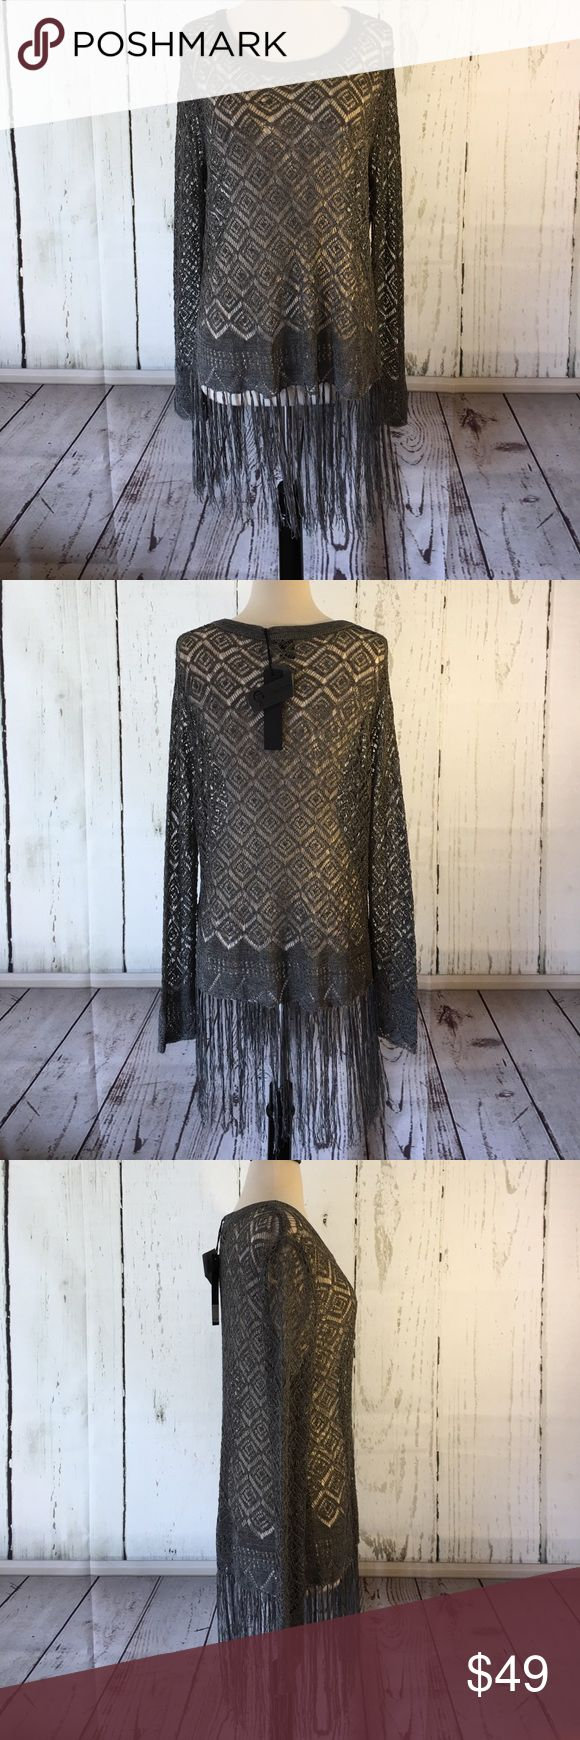 🎀🆕C. Luce Open Weave Fringed Top🎀 So beautiful, with the open weave and the long fringe along the bottom, this would look amazing with a bralette or cami underneath, worn with anything from jeans to a skirt or even over a swimsuit if you so desire. Such a cute, boho chic top!' C. Luce Tops